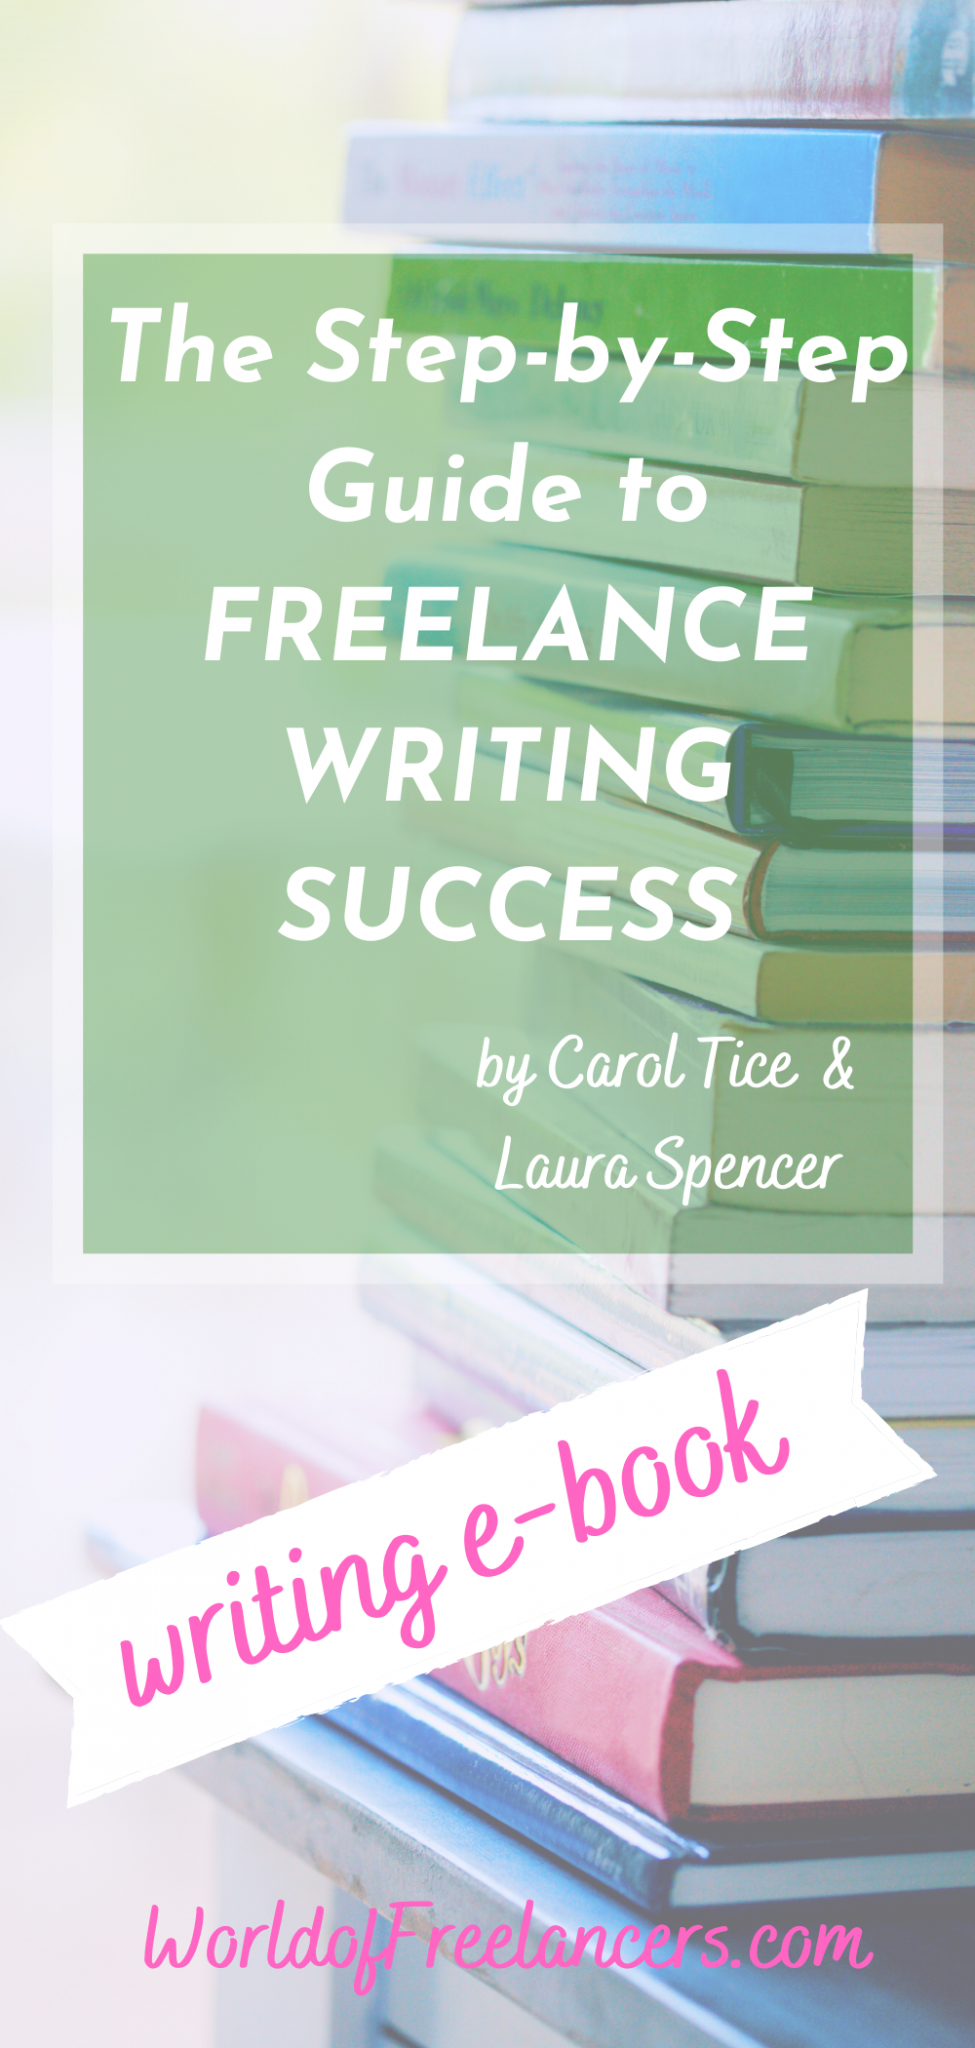 The Step-by-Step Guide to Freelance Writing Success writing ebook Pinterest iamge